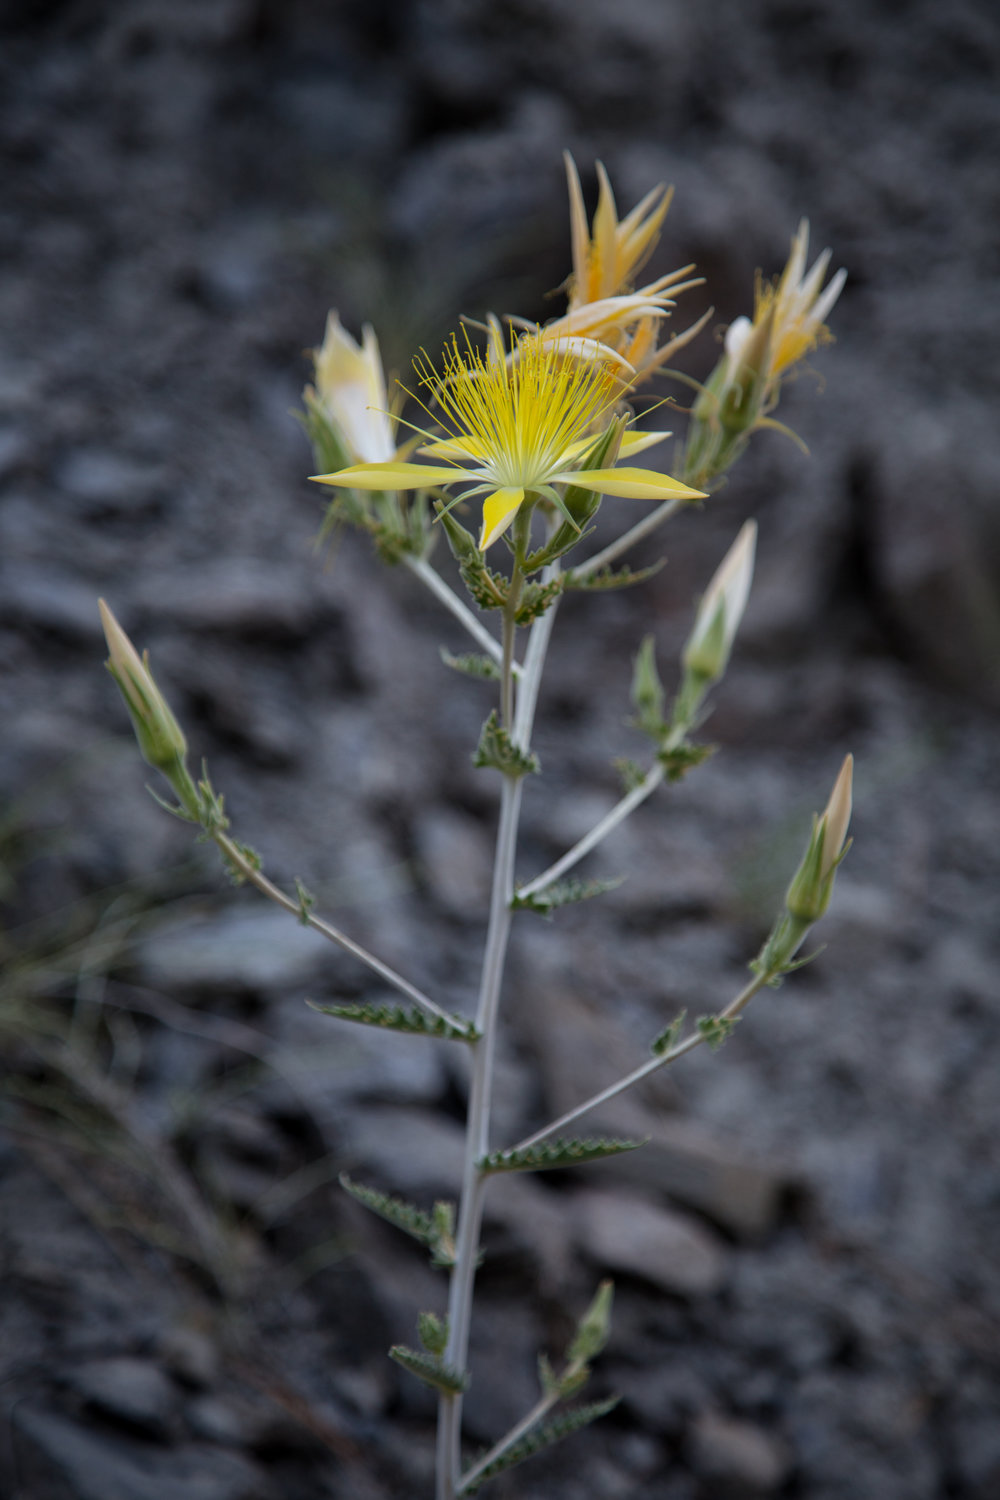 Giant Blazing Star, Mentzelia laevicaulis, growing on the rocks.